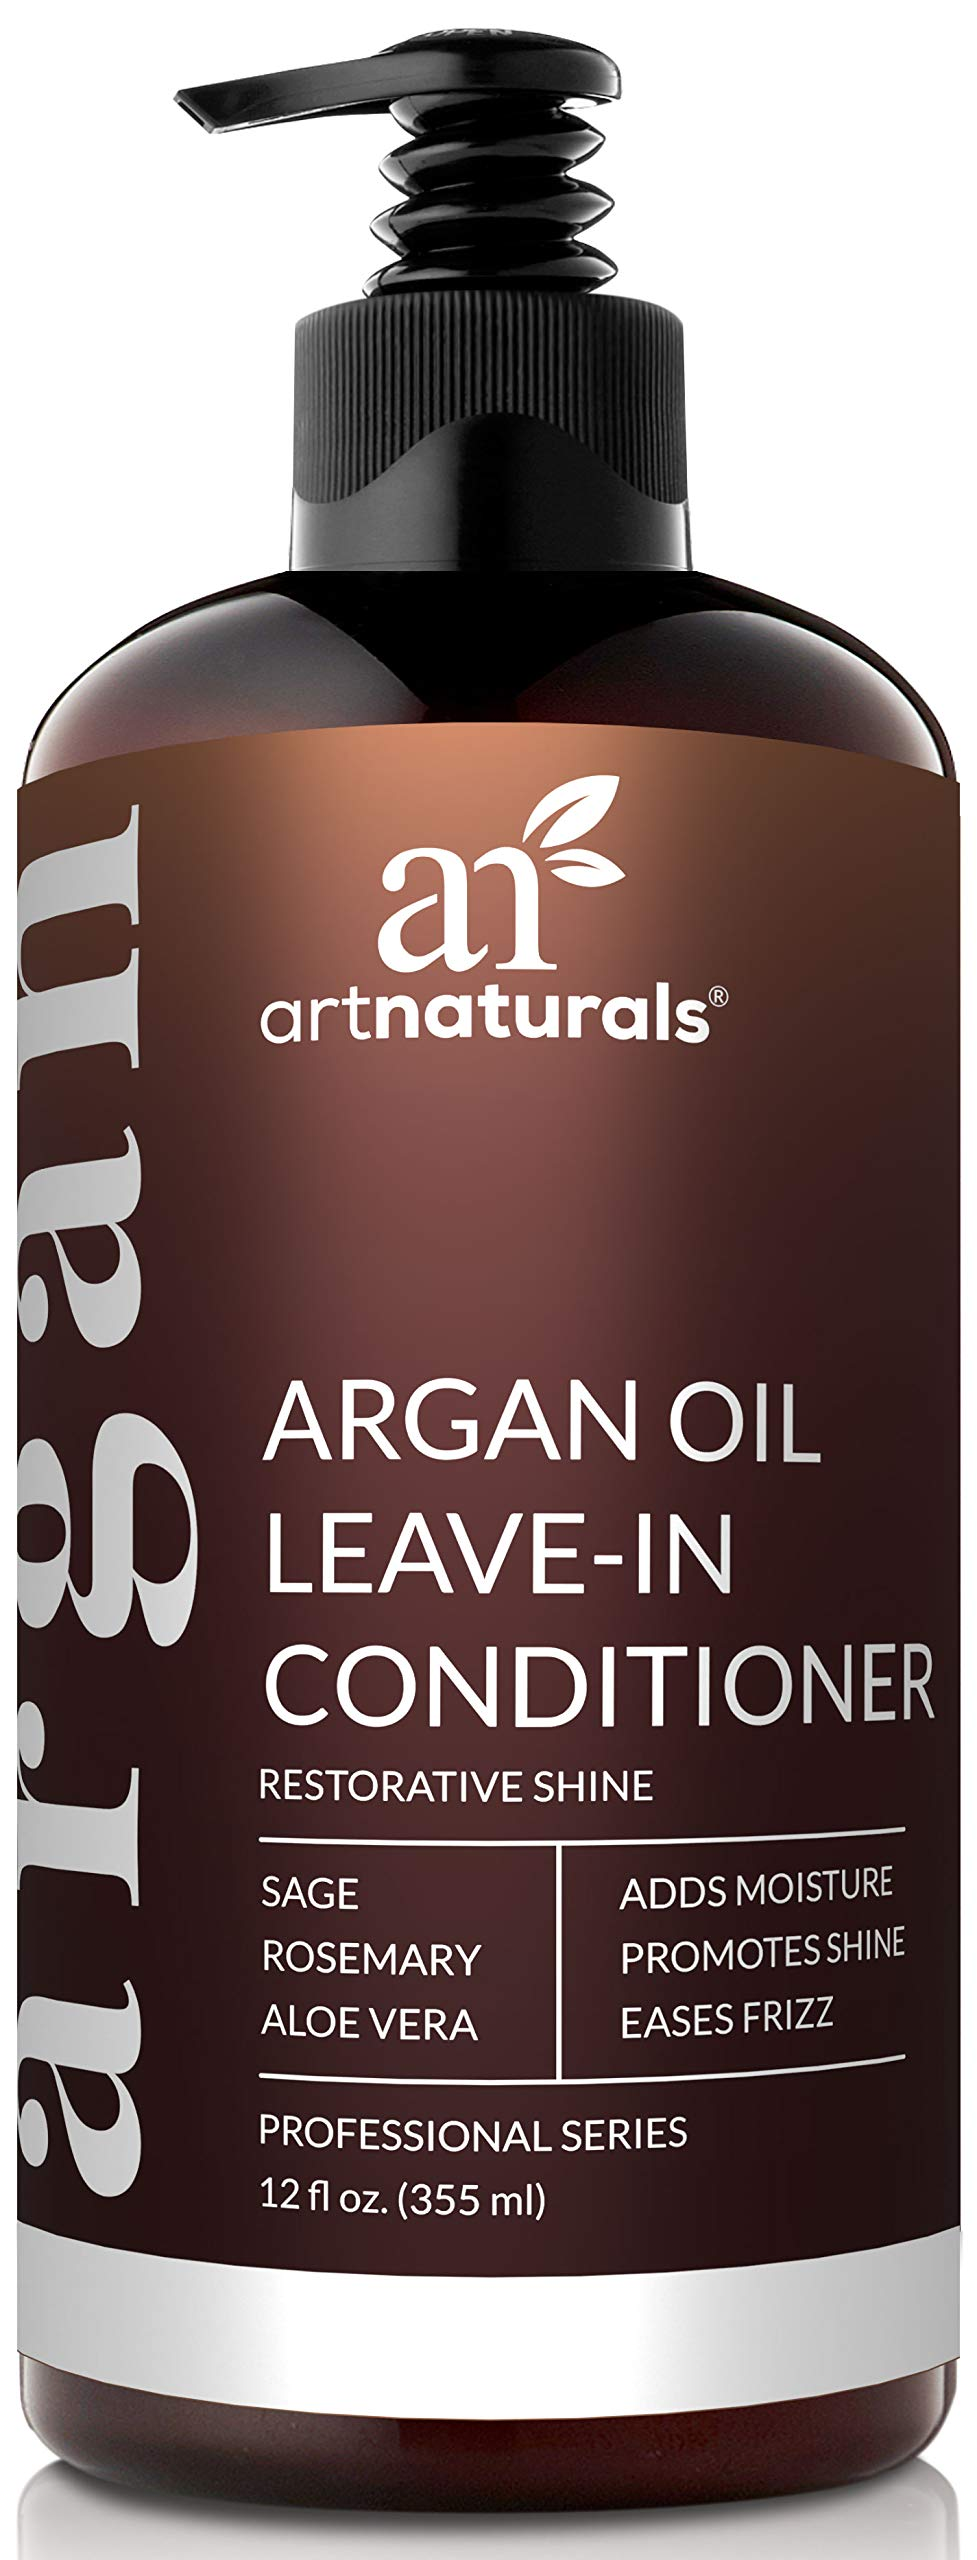 ArtNaturals Argan Oil Leave-In Conditioner - (12 Fl Oz / 355ml) - Made with Organic and Natural Ingredients - for All Hair Types - Treatment for Damaged, Dry, Color Treated and Hair Loss by ArtNaturals